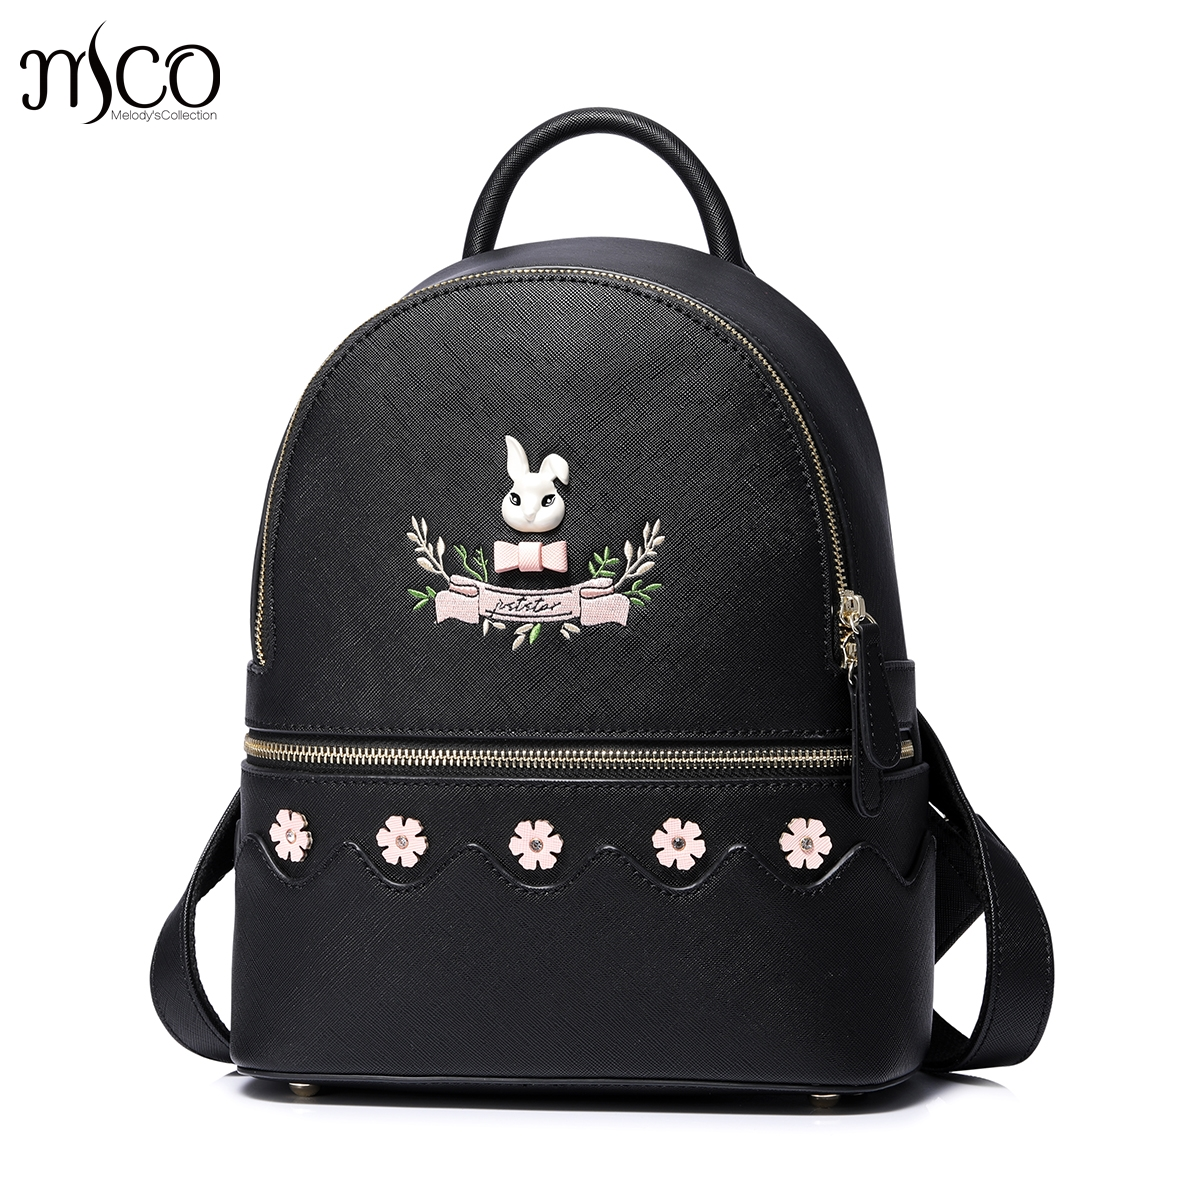 Just Star Women Backpack bunny Flower PU Leather Mochila Escolar School Bags For Teenagers Girls Top-handle Backpacks Herald Bag color women backpack travel bow satchel rucksack pu leather mochila escolar school bags for teenagers girls top handle backpacks